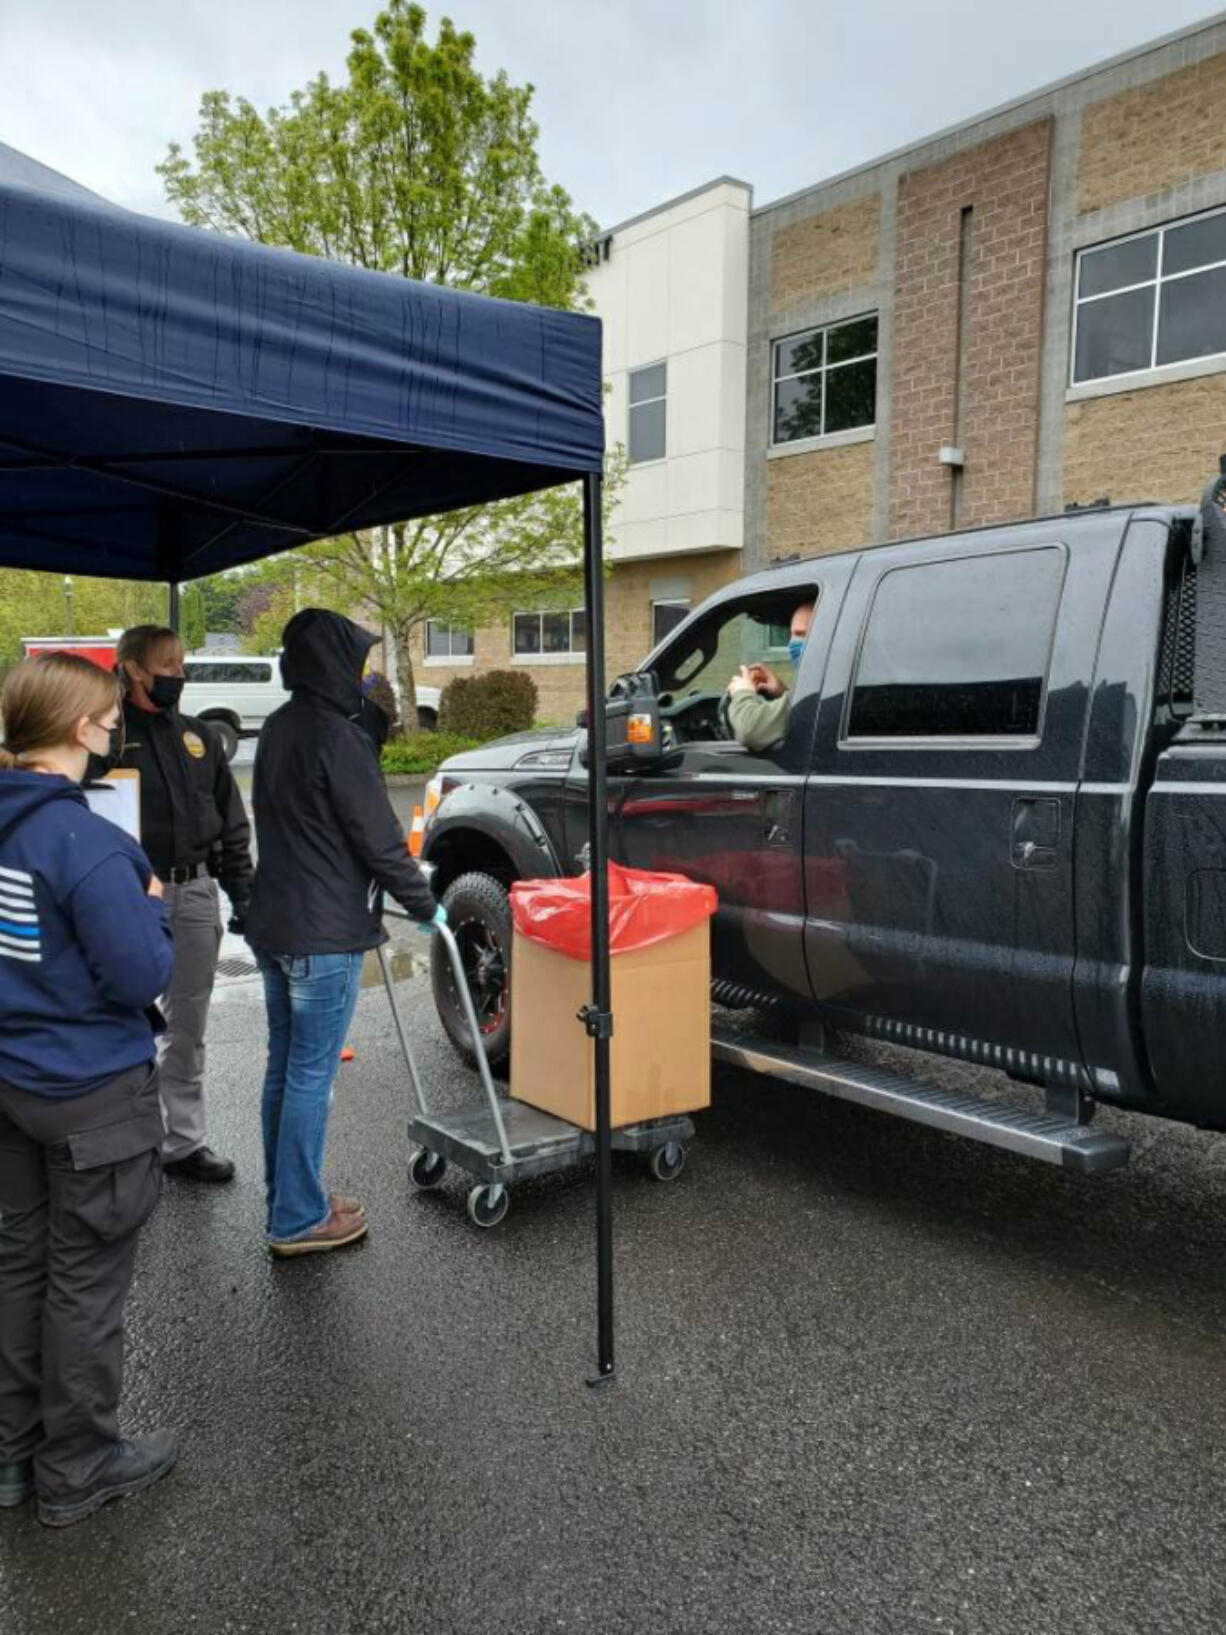 CLARK COUNTY: Several organizations and agencies helped organize a drug take-back event at seven sites throughout Southwest Washington, including the Battle Ground Police Department's volunteer team.